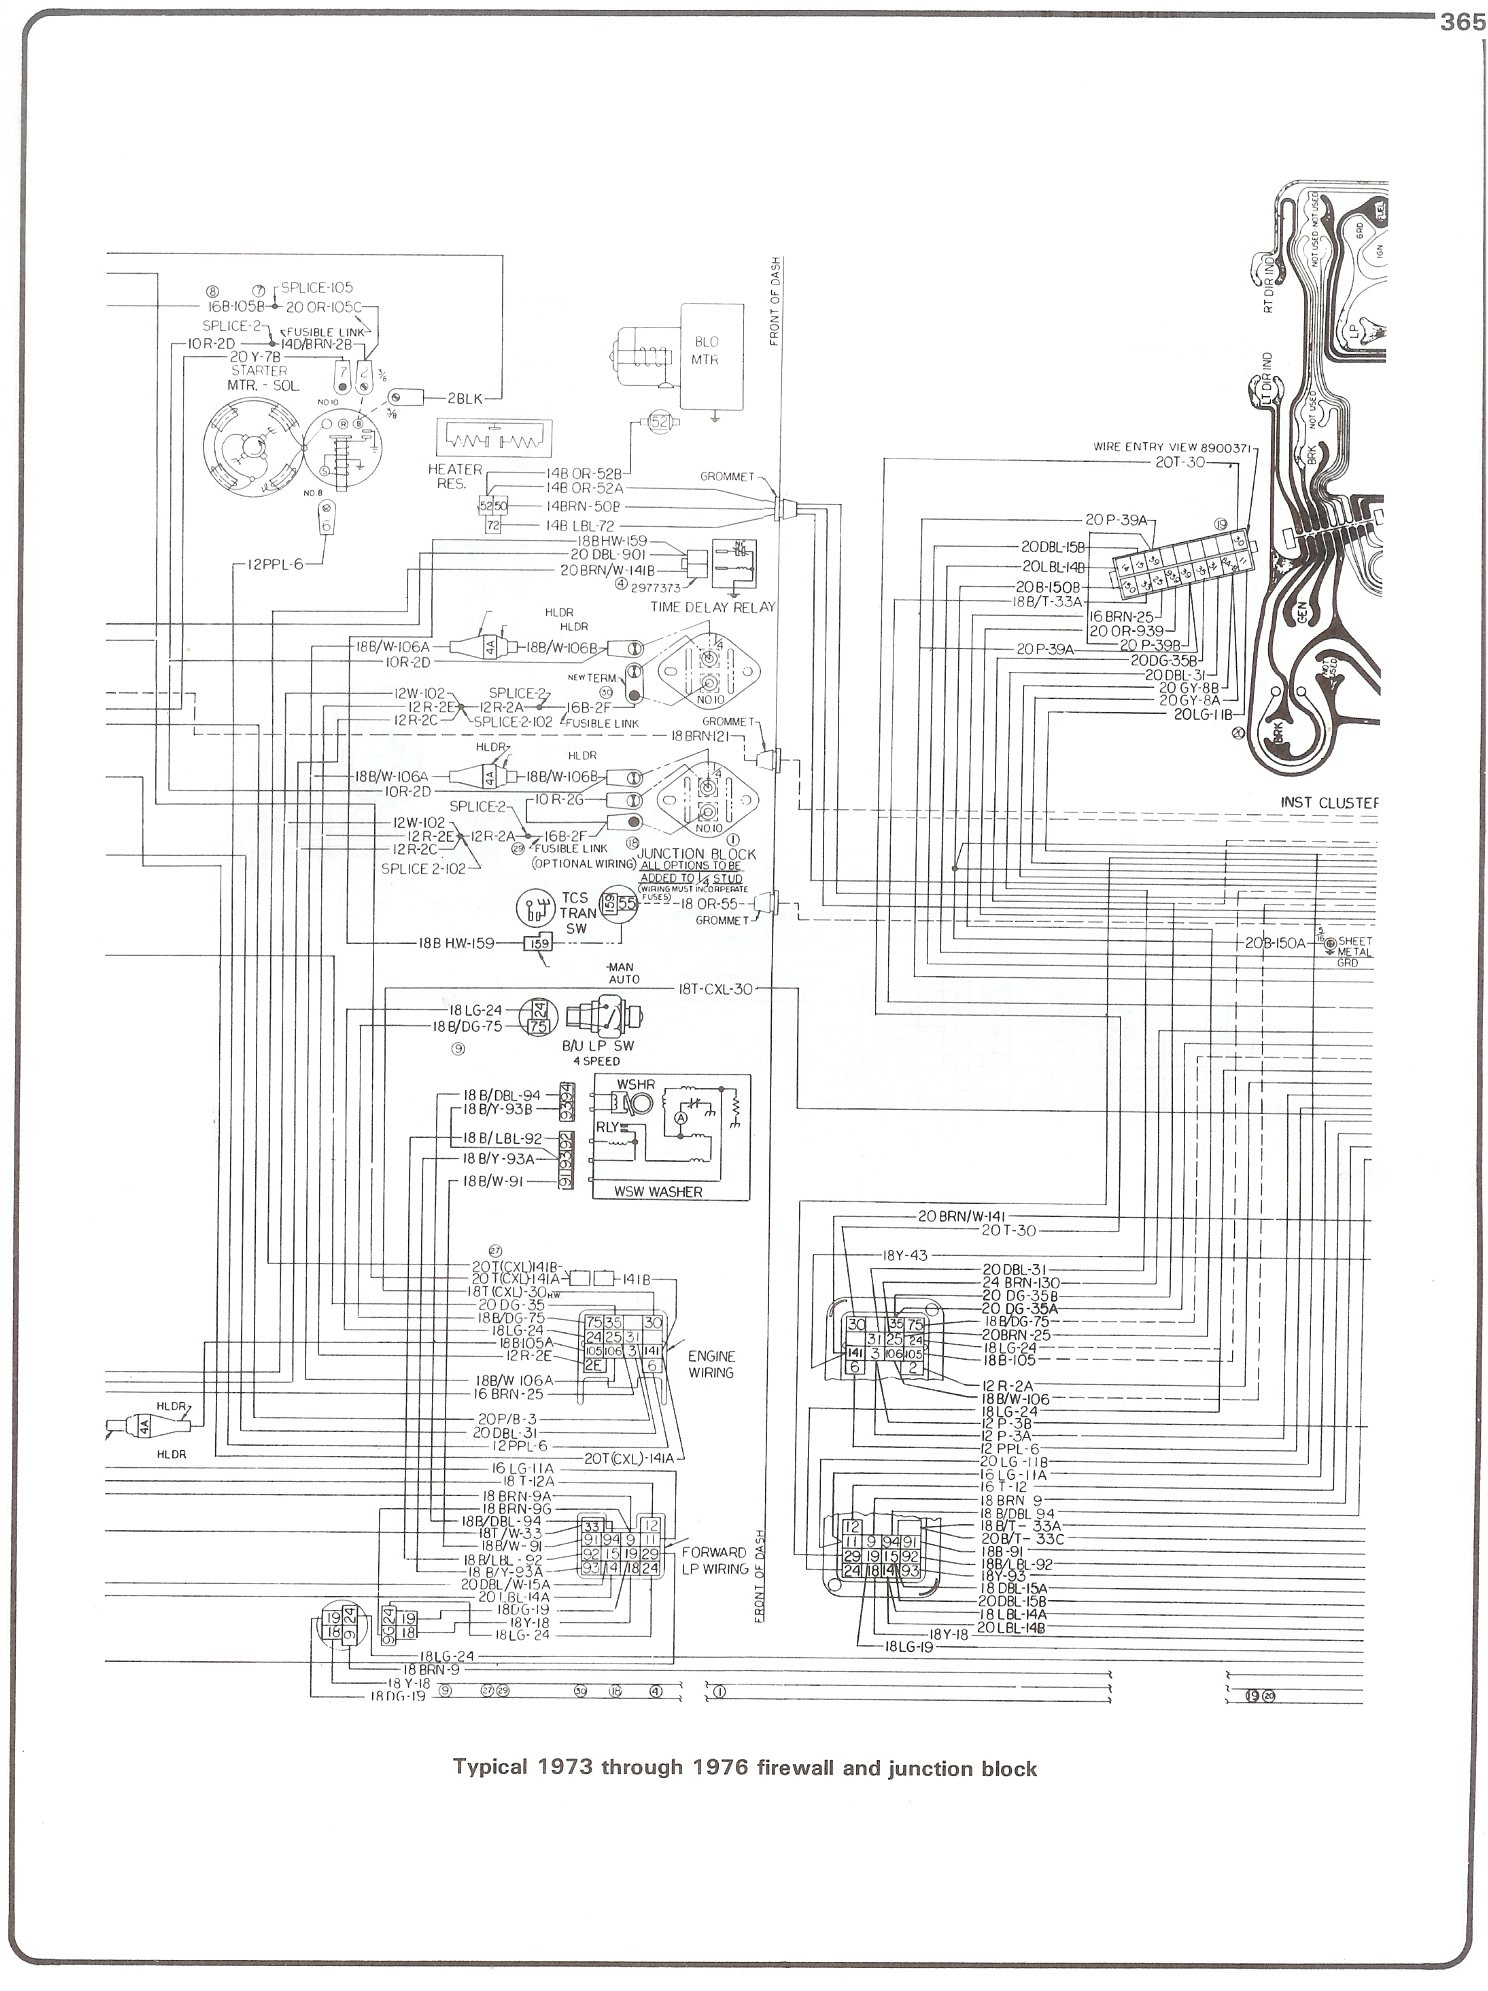 73 76_firewall_junct complete 73 87 wiring diagrams 1978 chevy truck fuse box diagram at cos-gaming.co